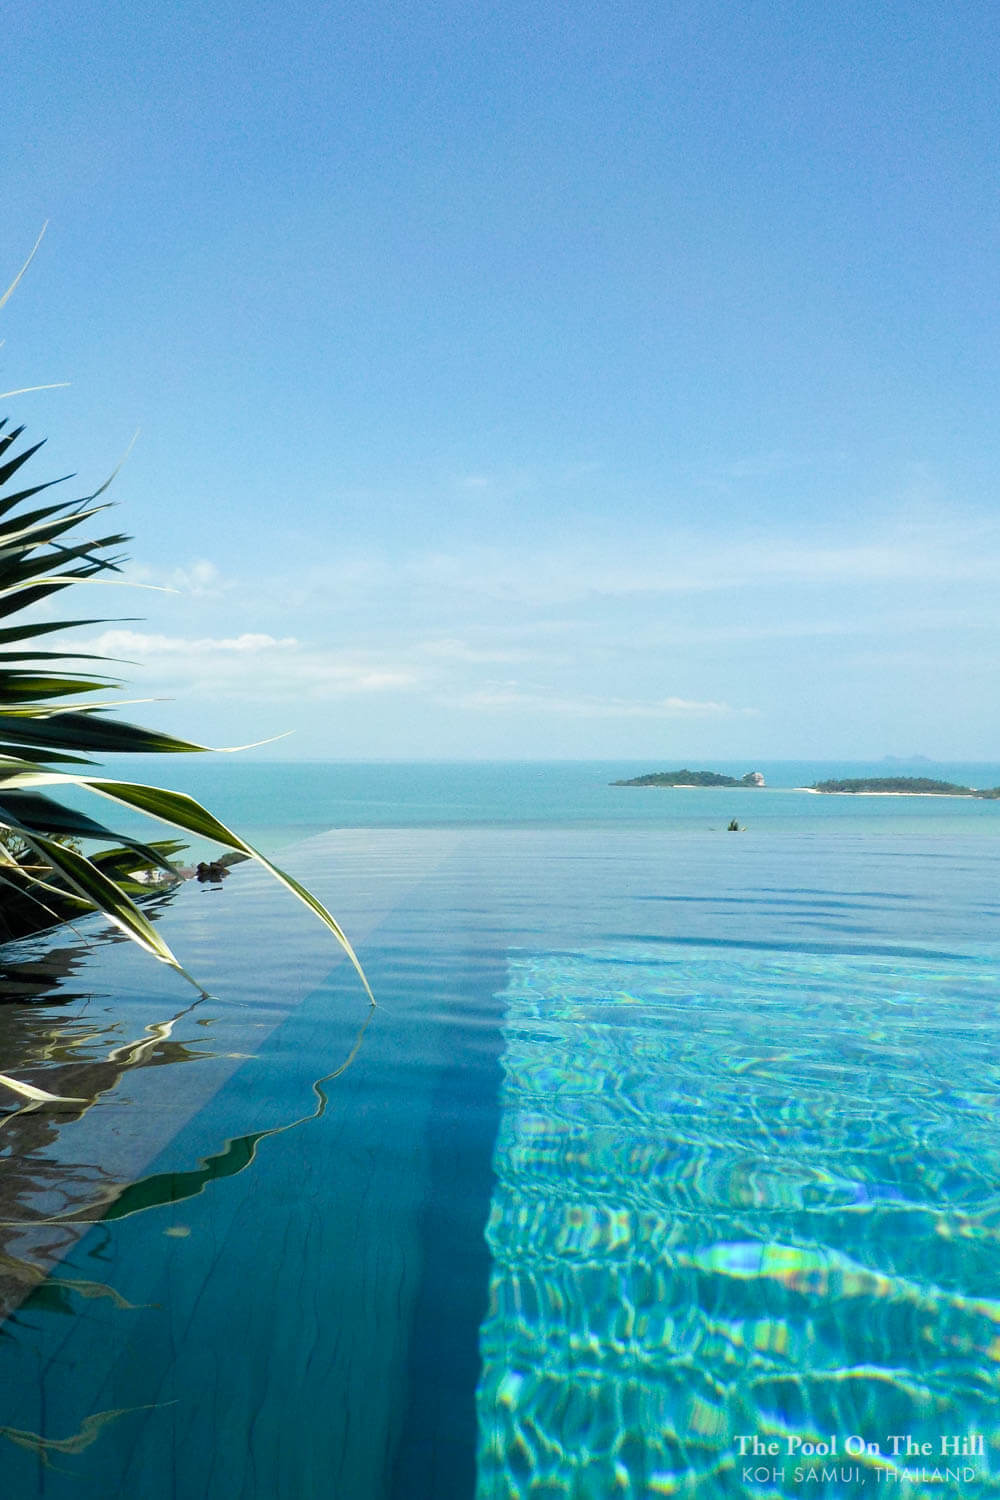 How to rent a villa in Thailand? Hidden Villa Perk: The infinity pool at The Pool on the Hill is freshwater – totally chlorine-free – and uses filtered rainwater. It feels like swimming in silk.